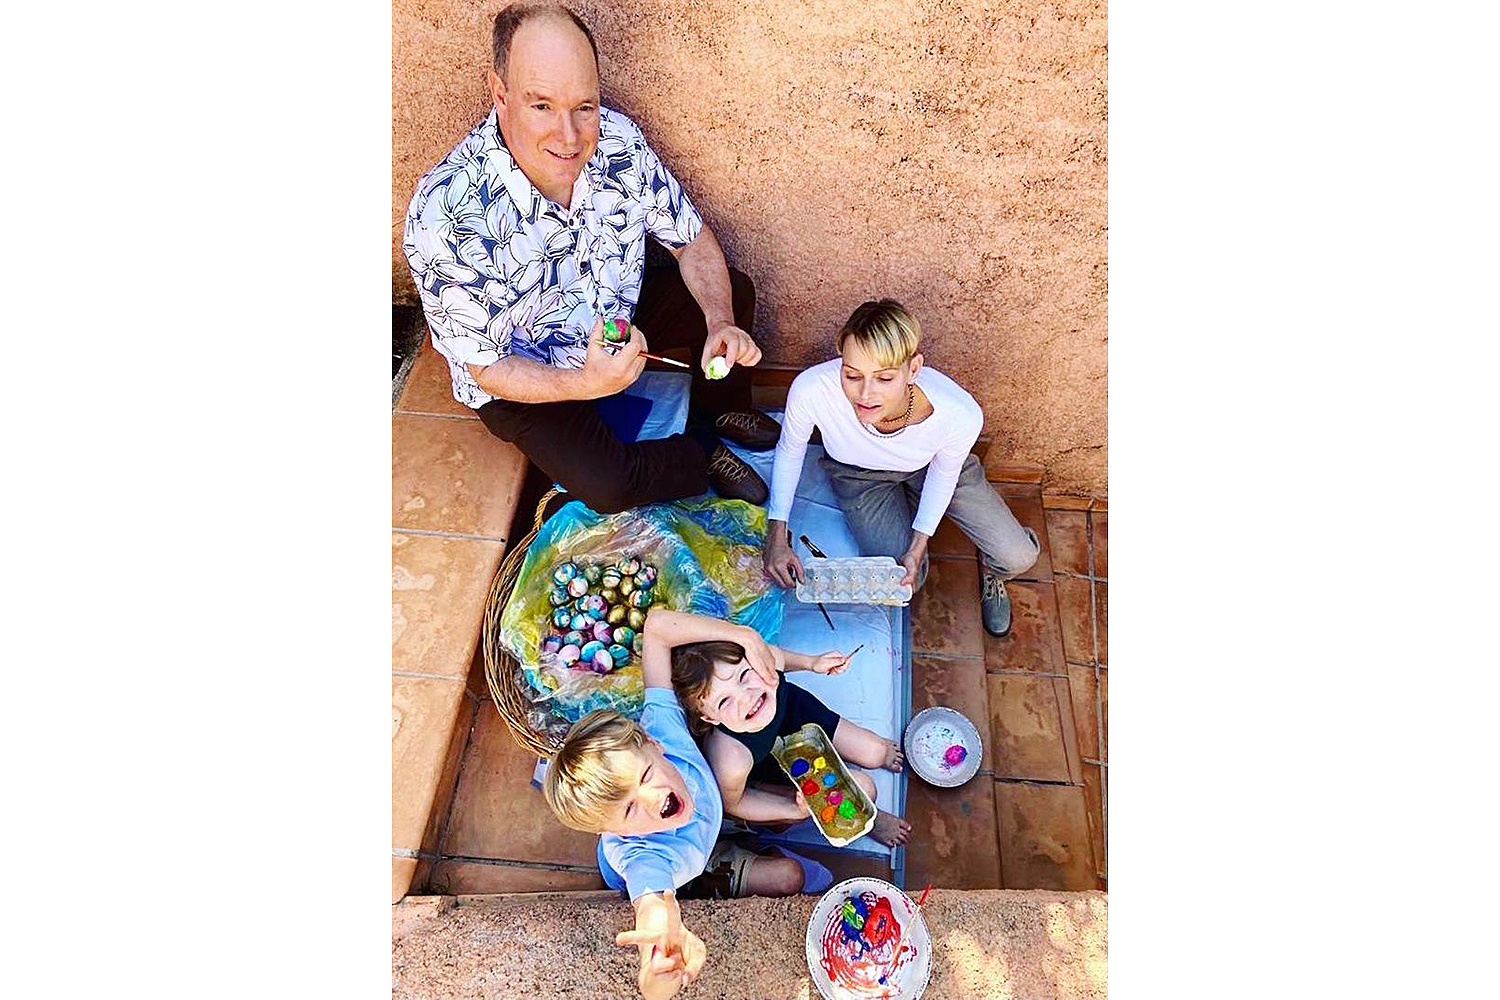 Monaco Royals Paint Eggs for Easter